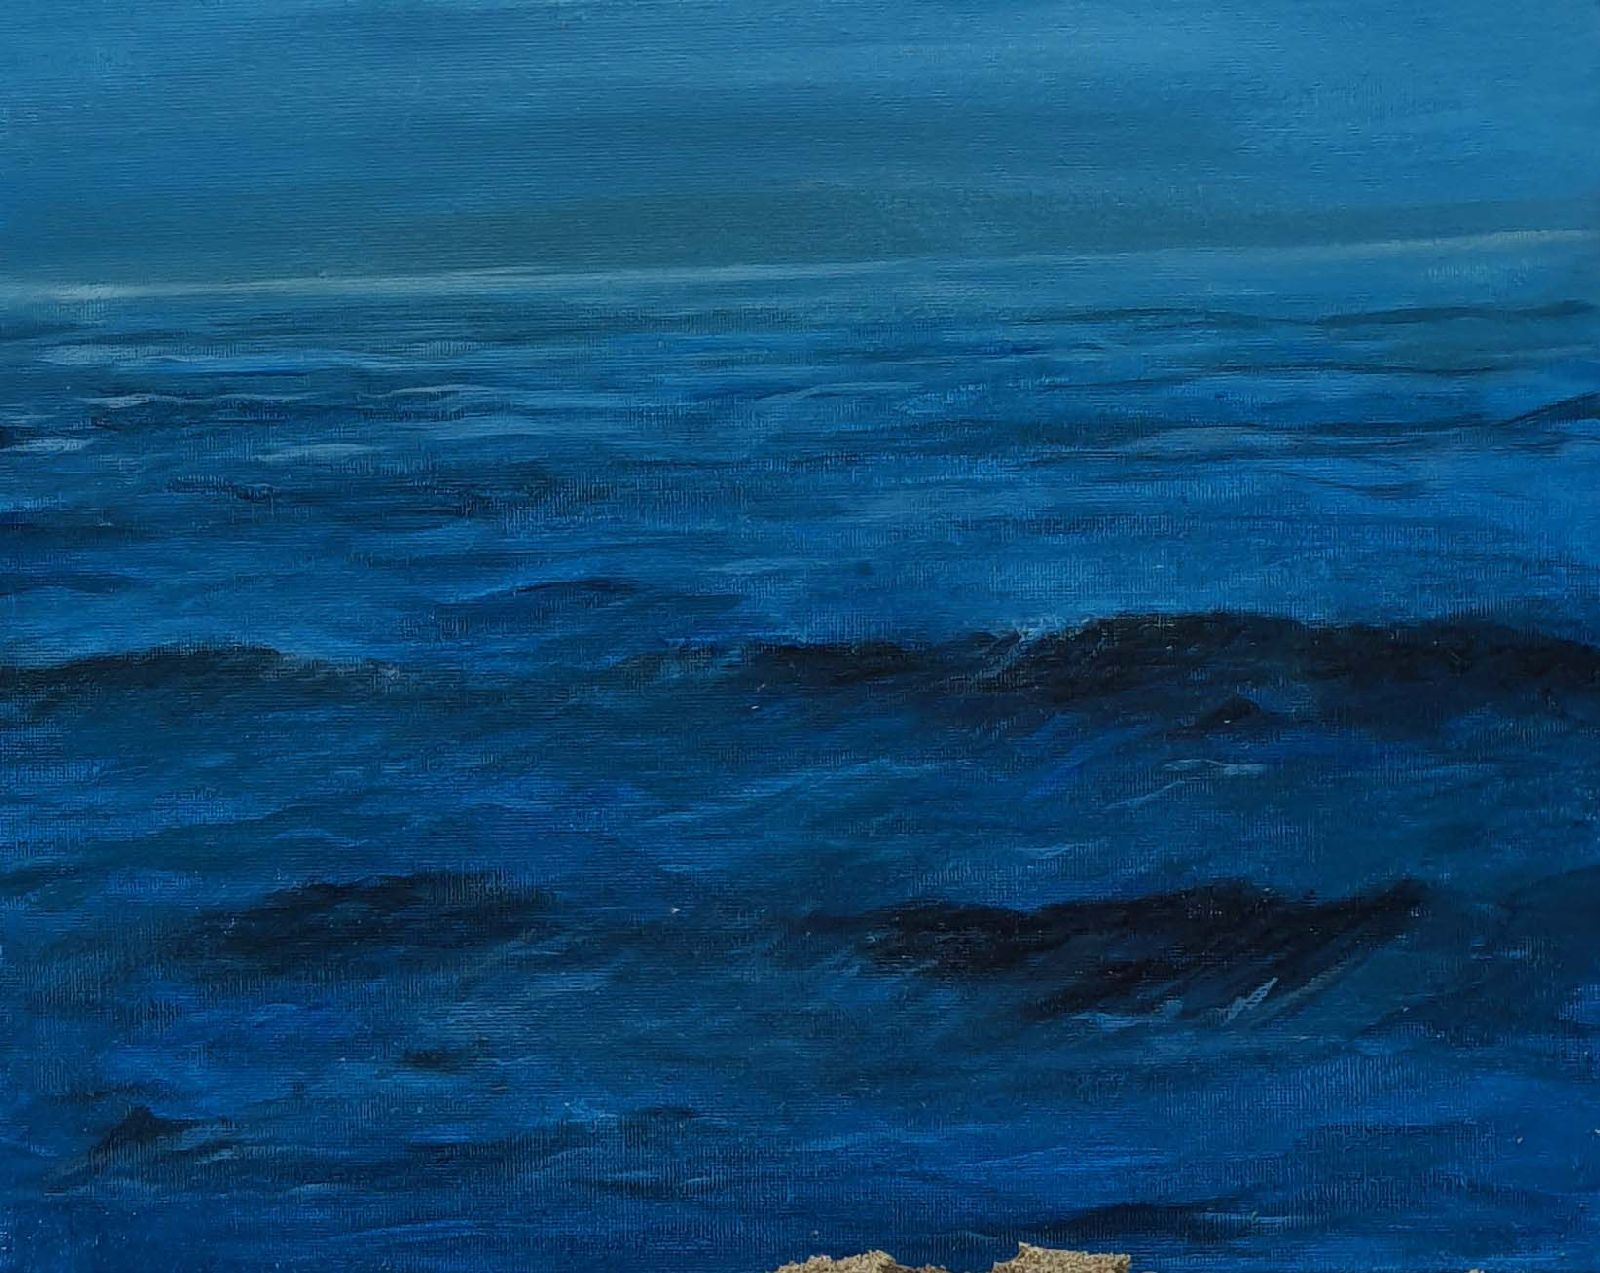 Seascape 4 by Maura Culbert